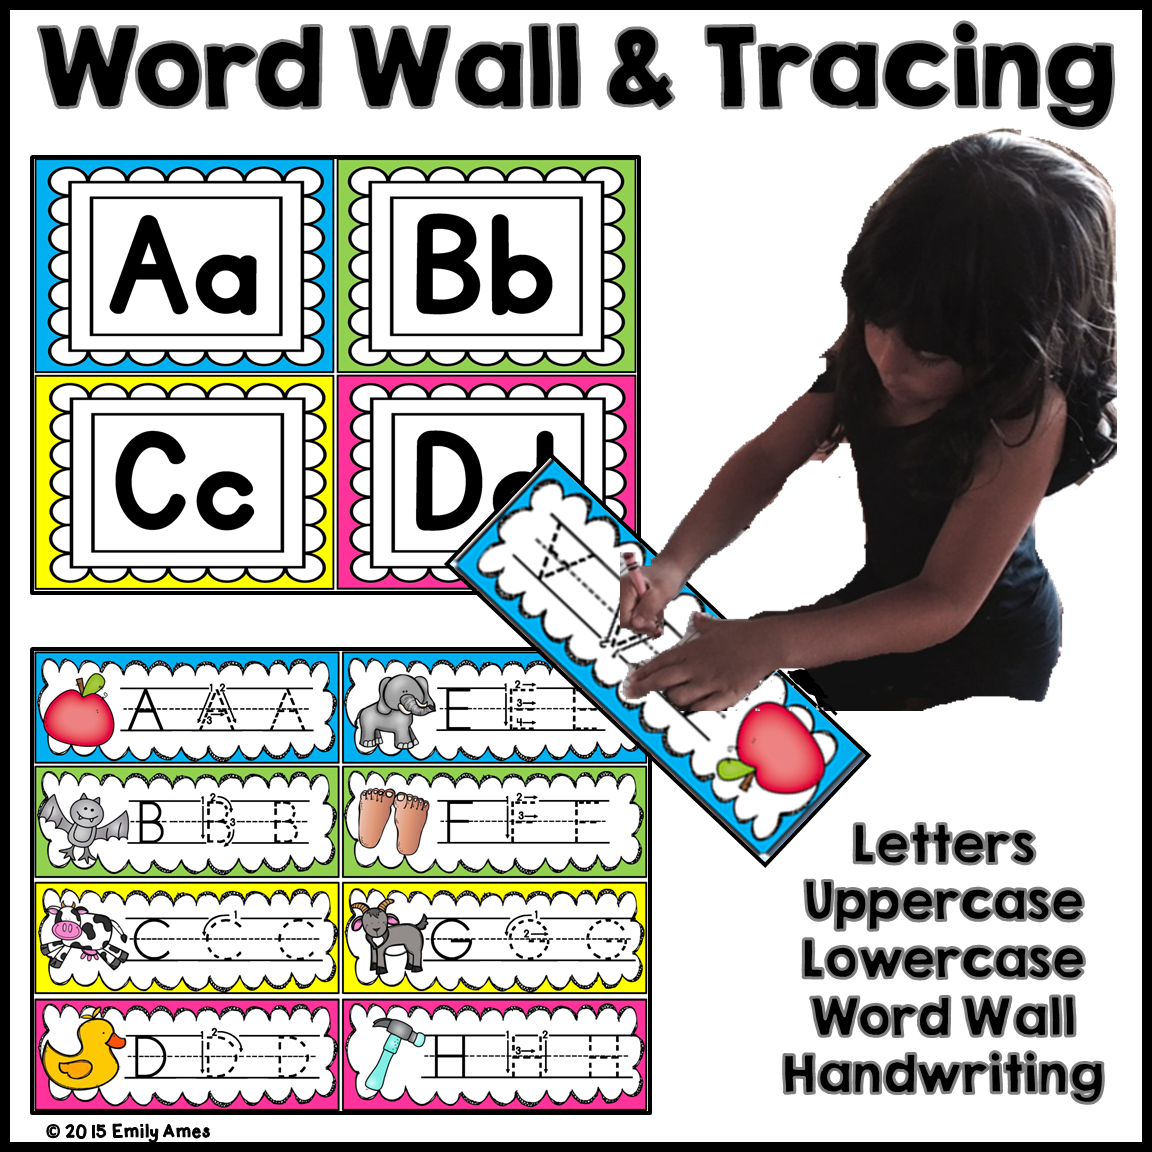 Word Wall Letters Extraordinary Word Wall And Tracing Letters  Tracing Letters Word Wall Inspiration Design